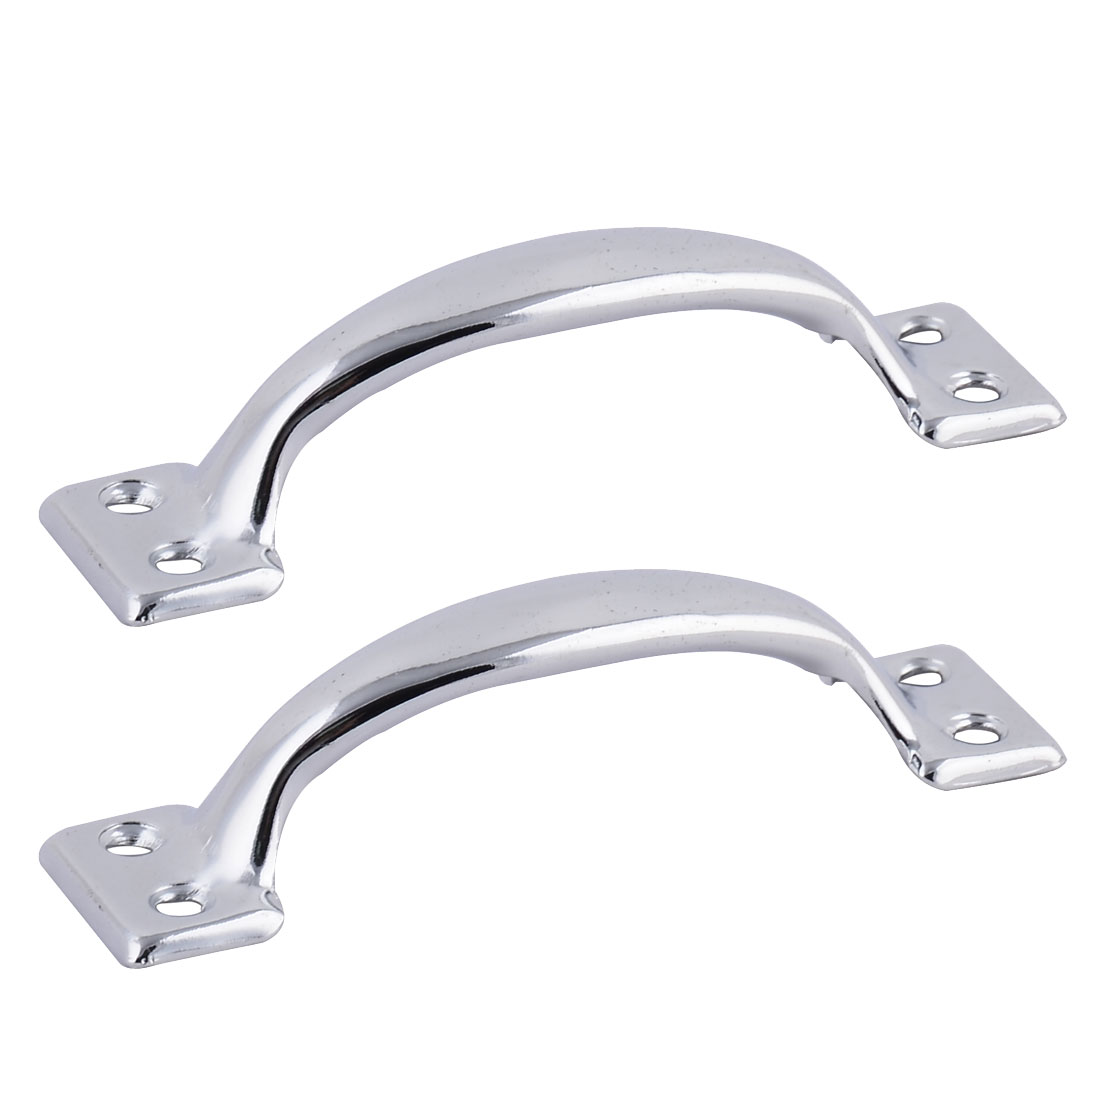 Cabinet Door Cupboard Chest Drawer 10.2cm Length Pull Handle Knob Silver Tone 2 PCS